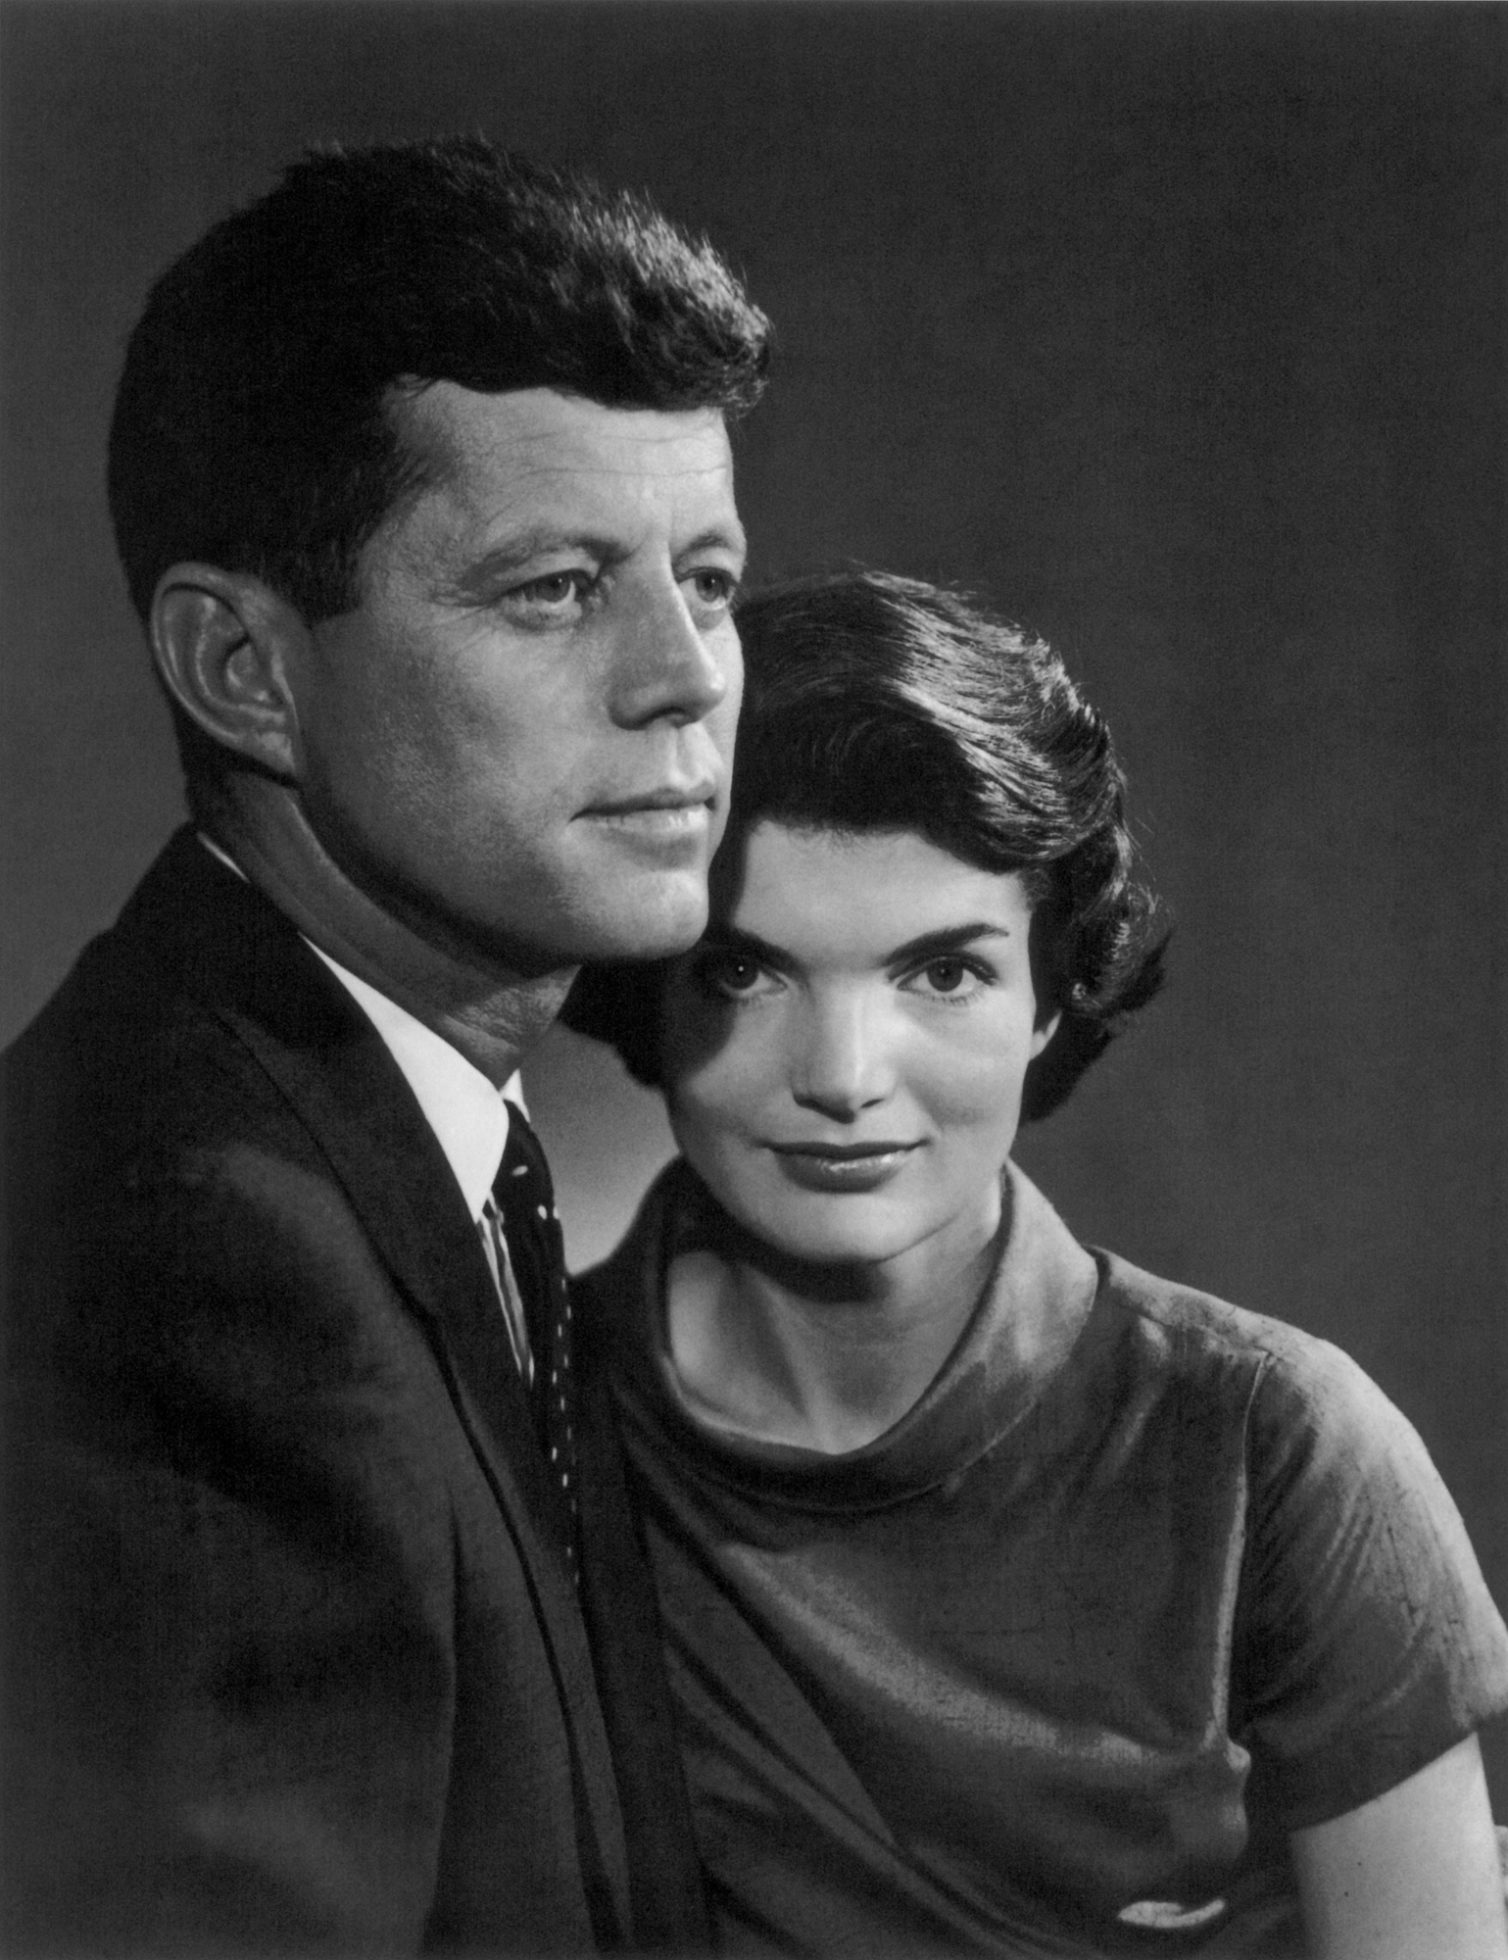 John And Jackie Kennedy: John And Jacqueline Kennedy